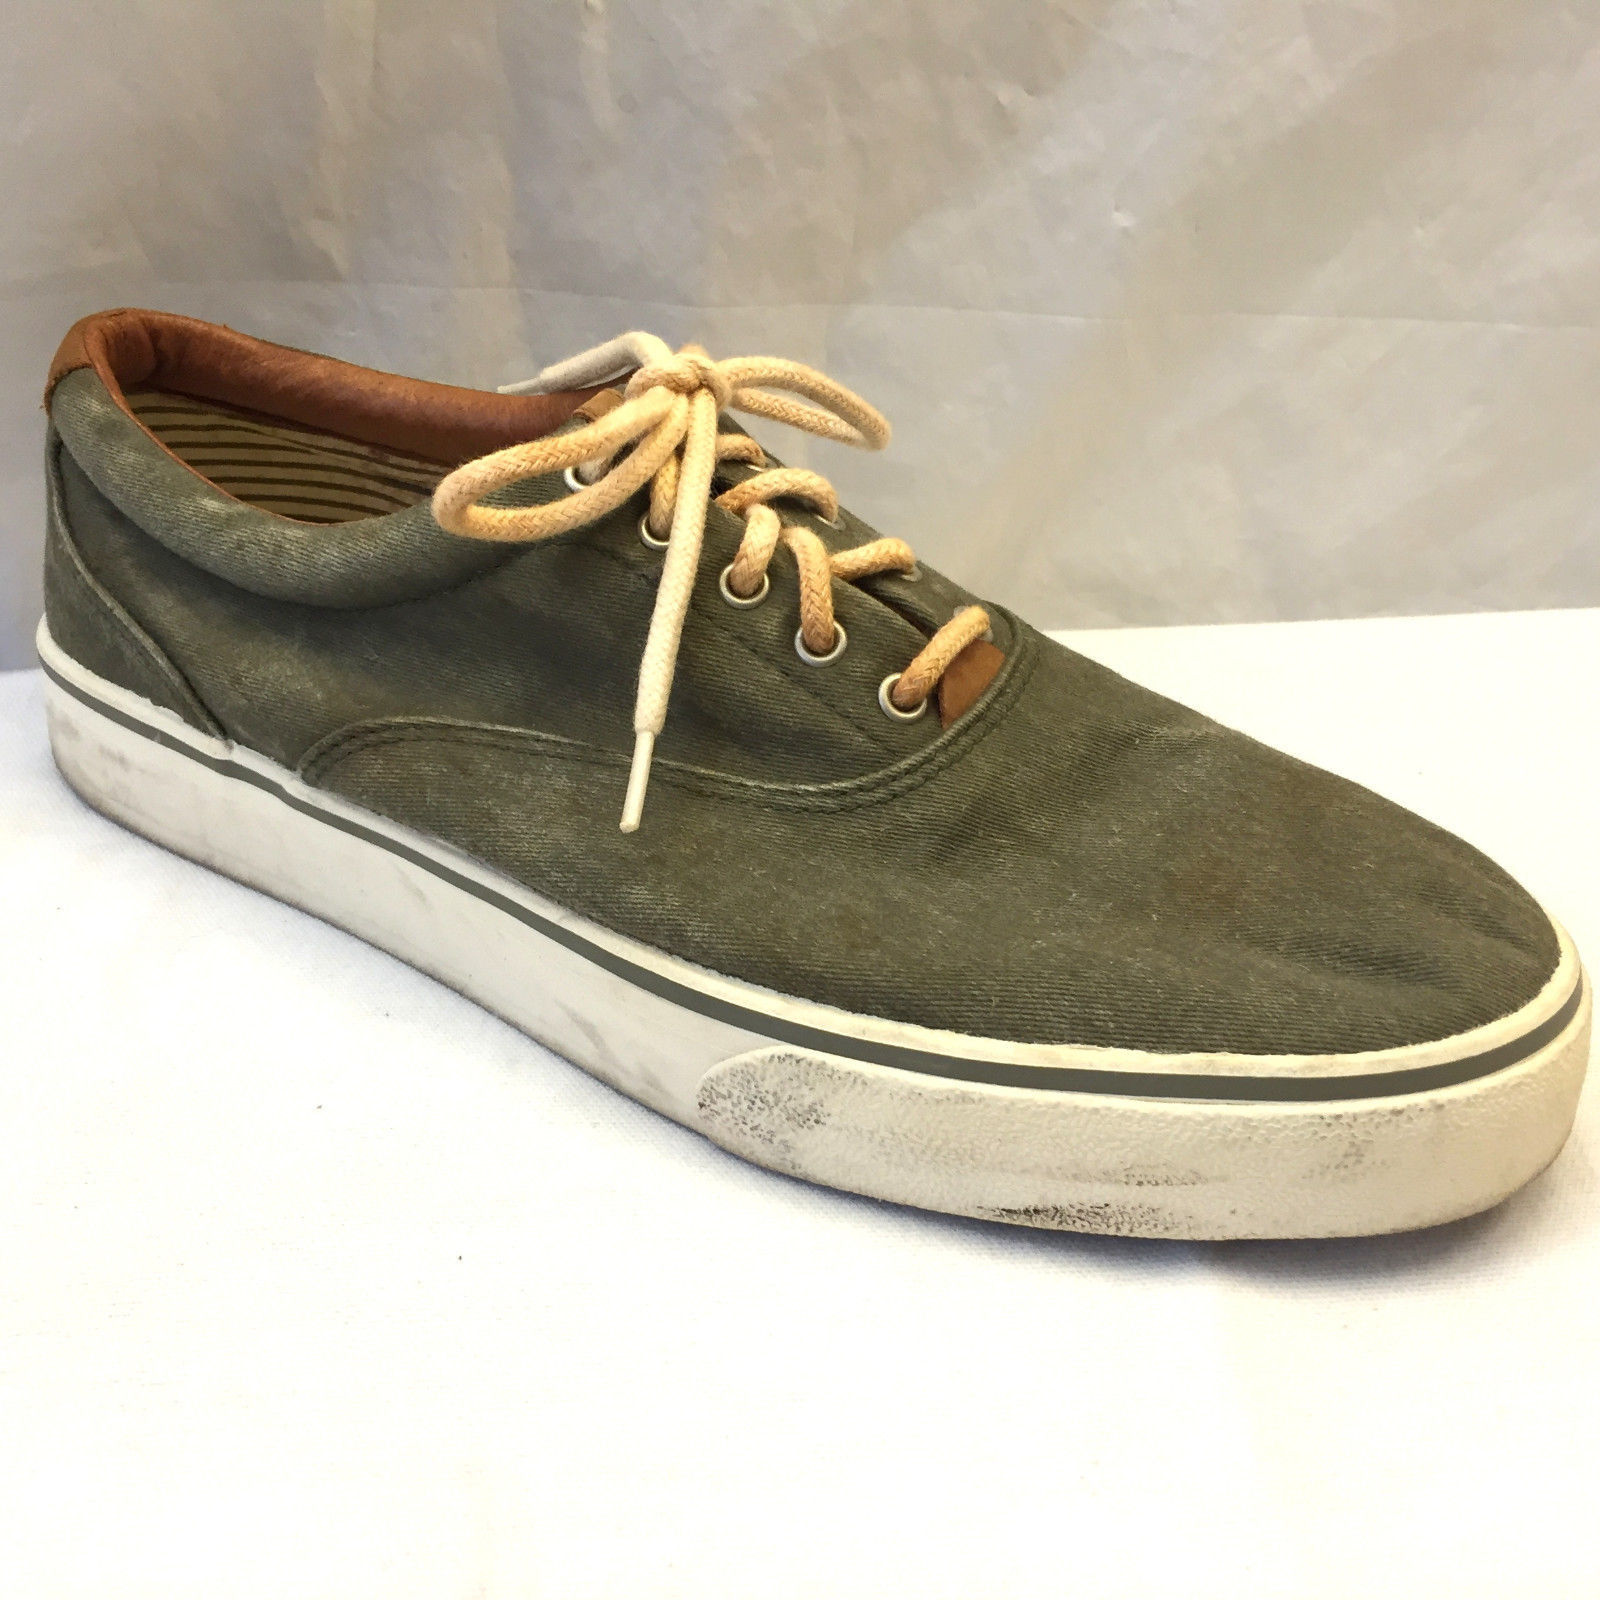 G.H. Bass Sneakers Canvas Mens Size 11.5 M Olive Lace Up ...